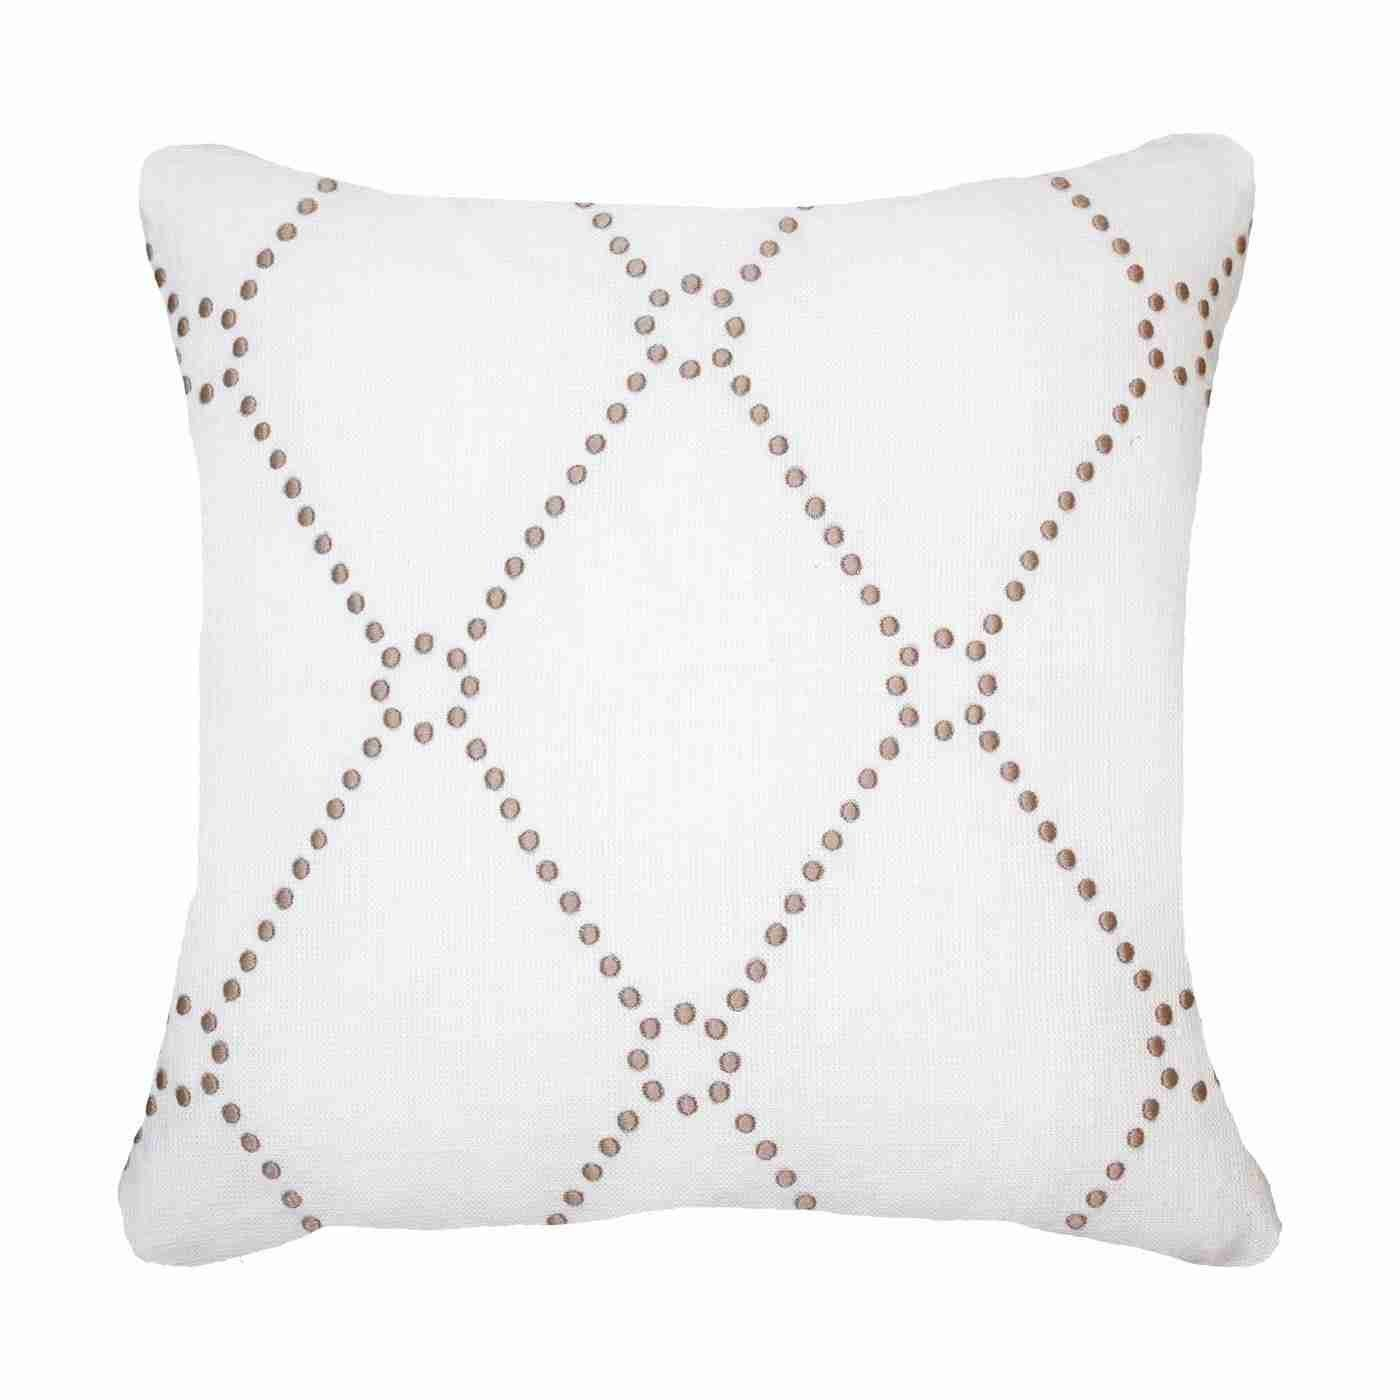 Bandhini Homewear Design Medium Cushion White / 19 x 19 Dot Diamond  White Medium 50x50cm